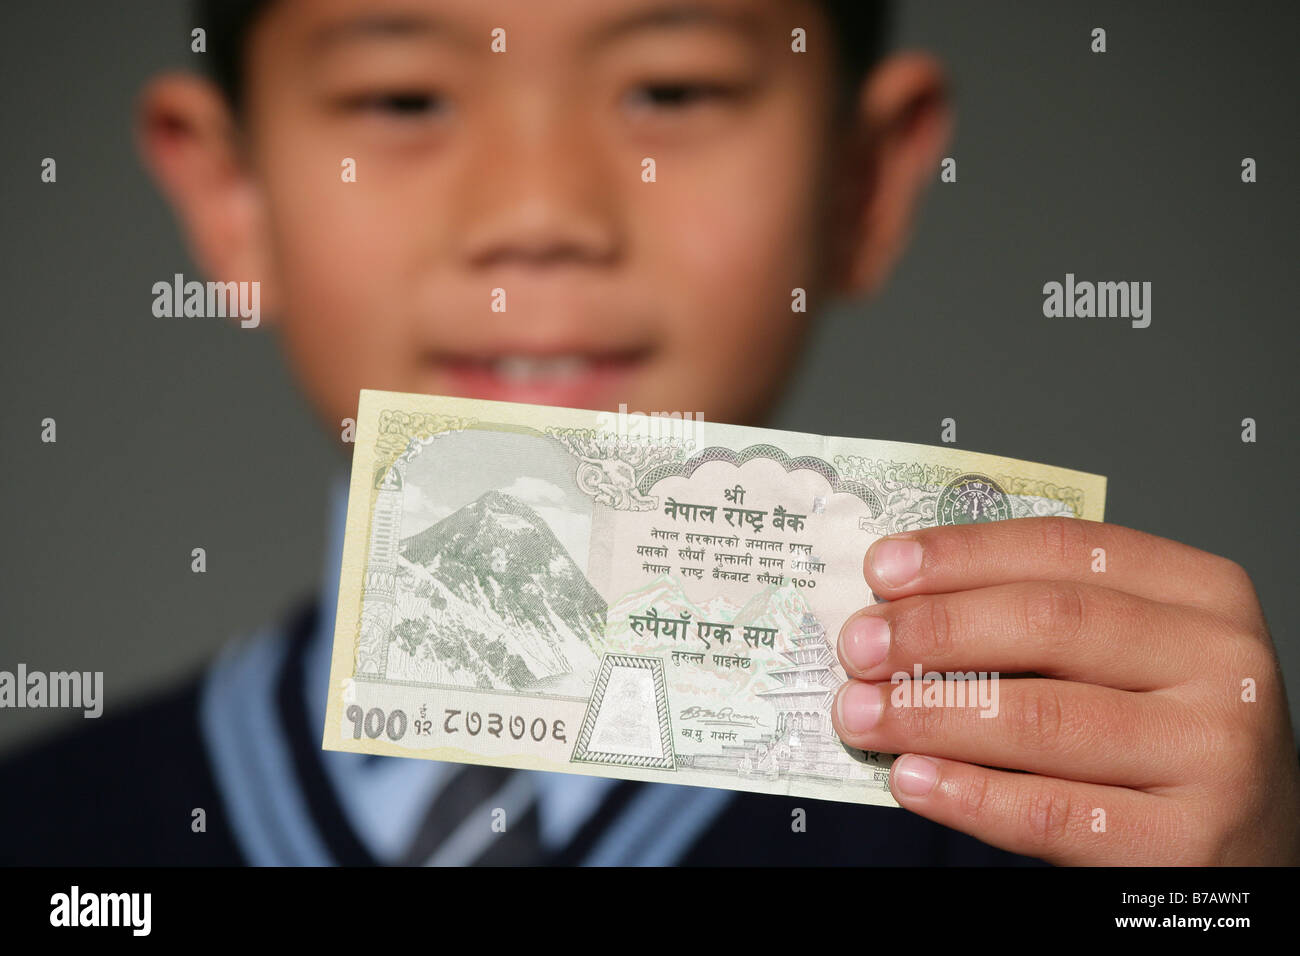 """Nepalese school boys holding a one hundred rupee note"" - Stock Image"